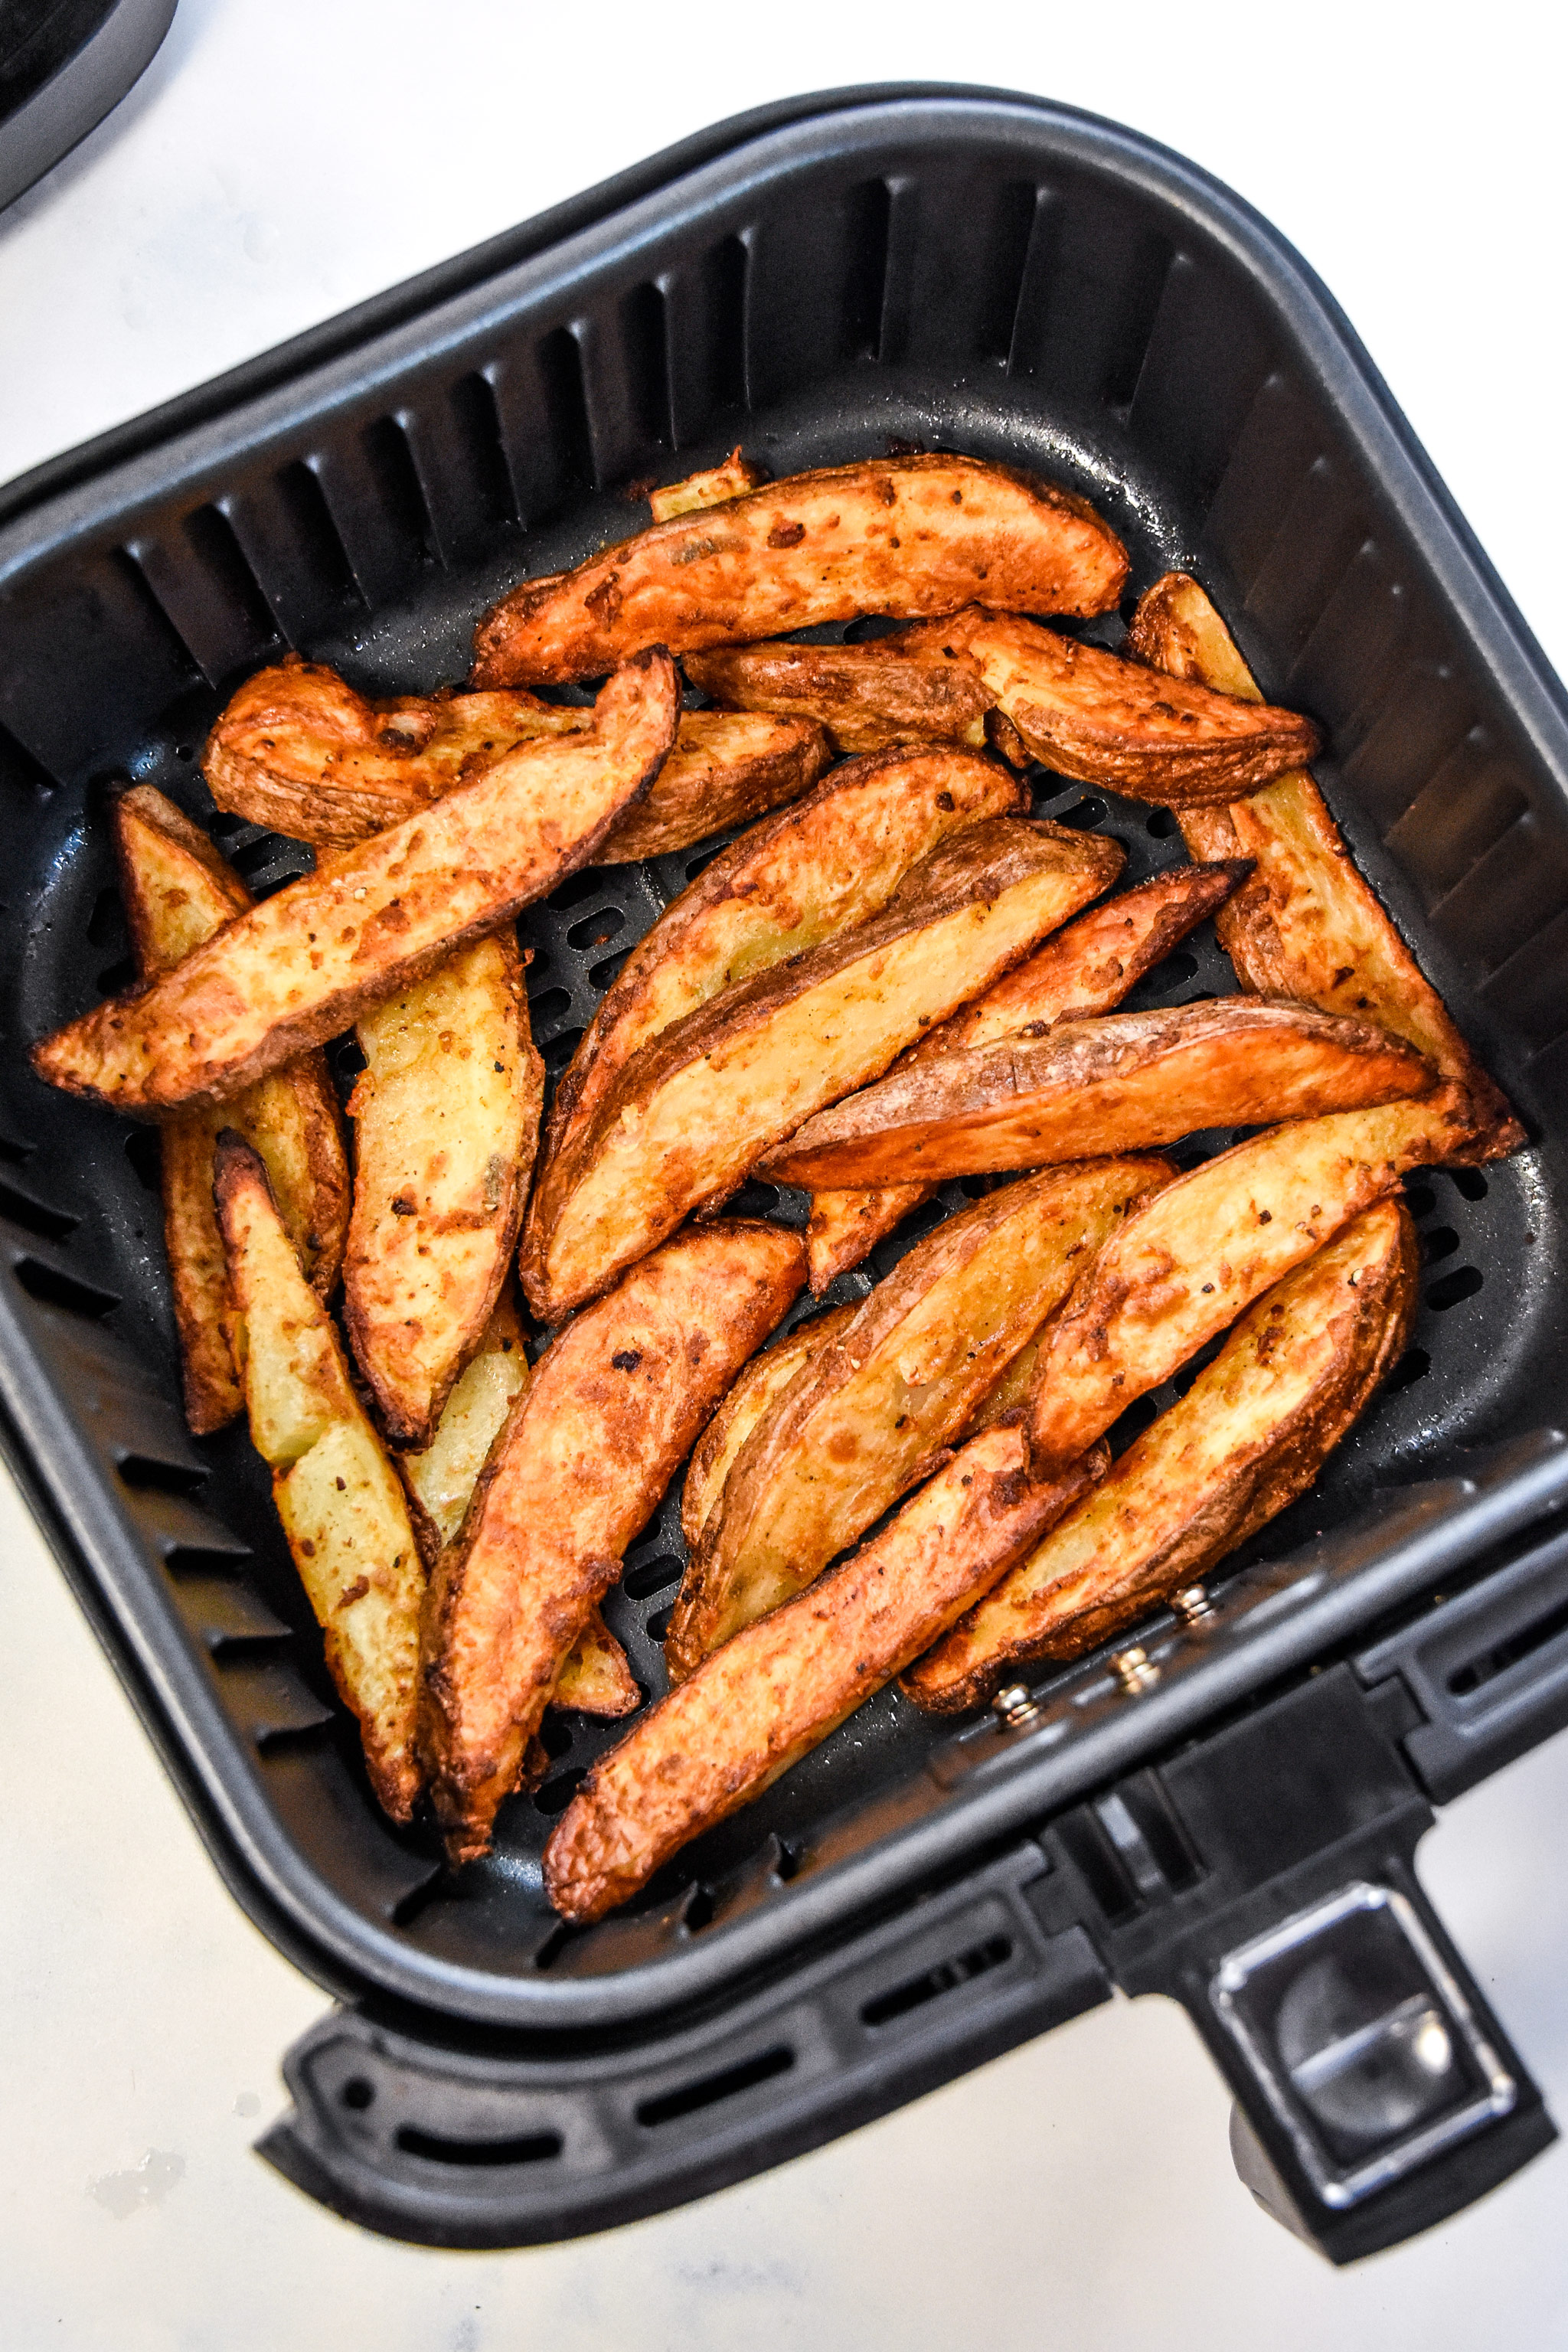 air fryer jojo potato wedges cooked in the air fryer basket.